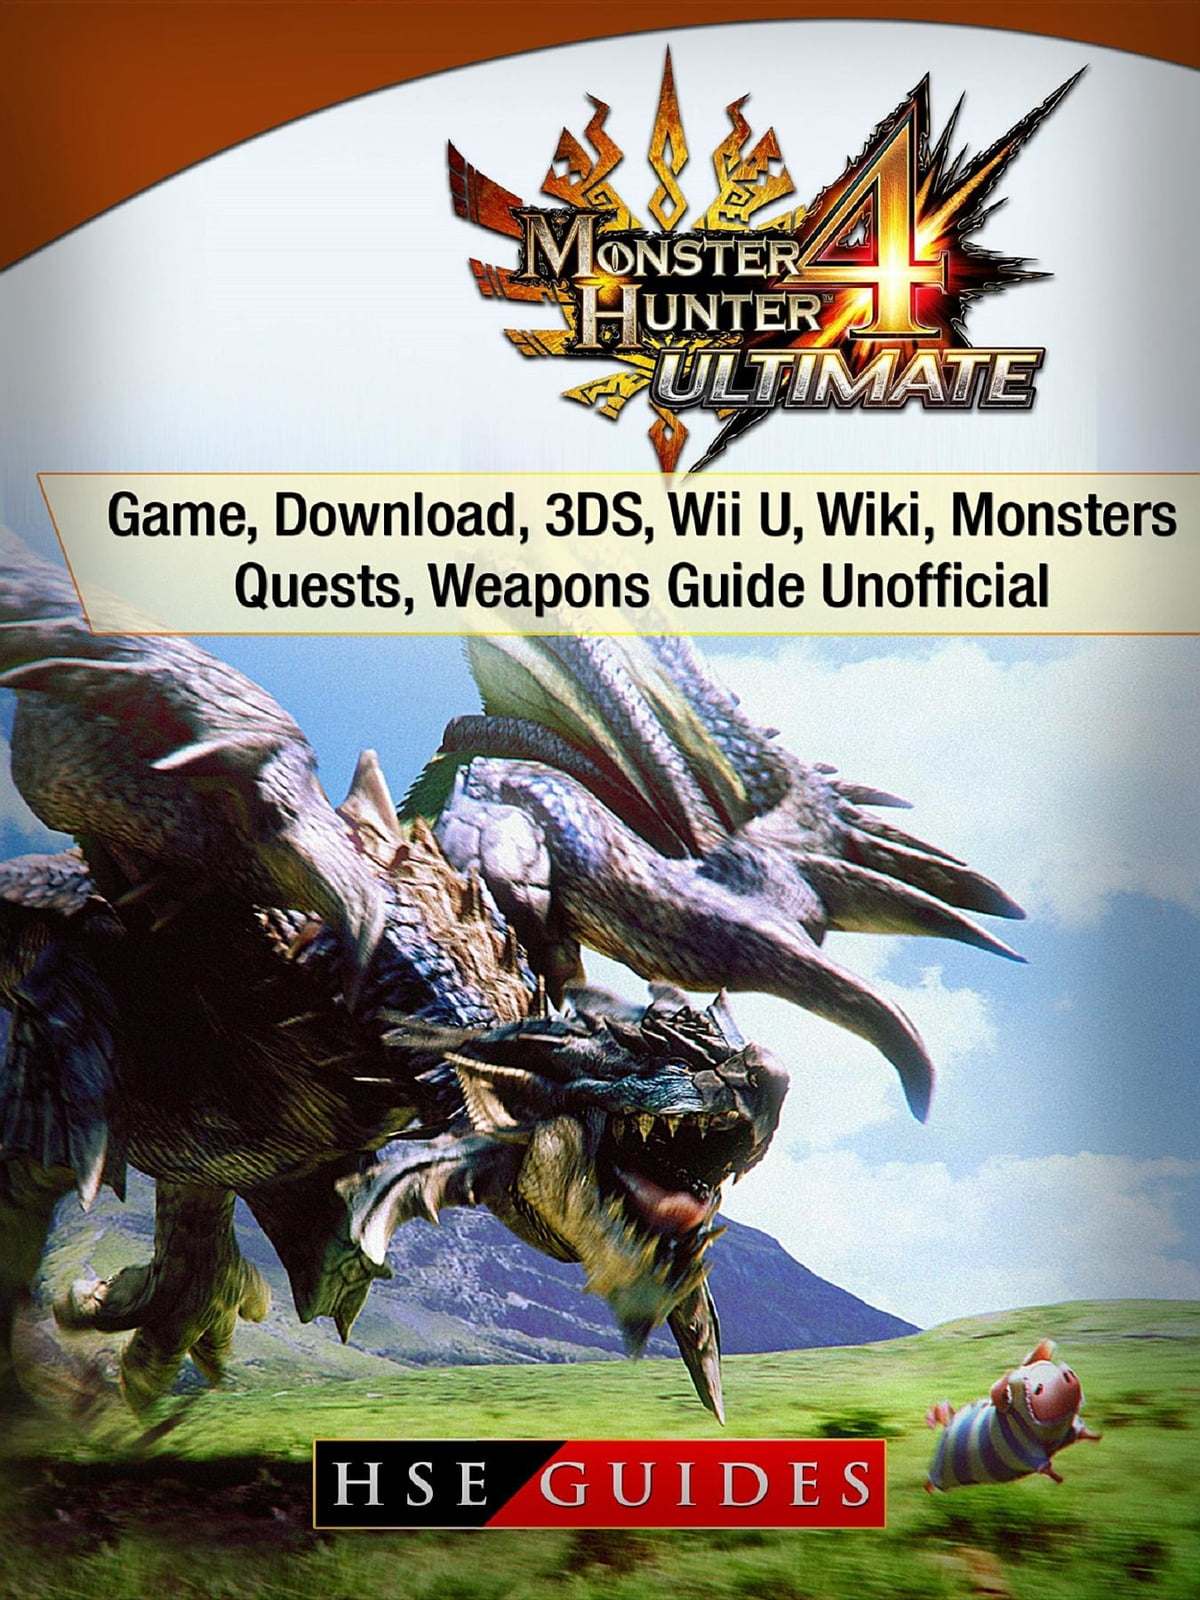 Monster Hunter 4 Ultimate Game, Download, 3DS, Wii U, Wiki, Monsters,  Quests, Weapons Guide Unofficial ebook by HSE Guides - Rakuten Kobo